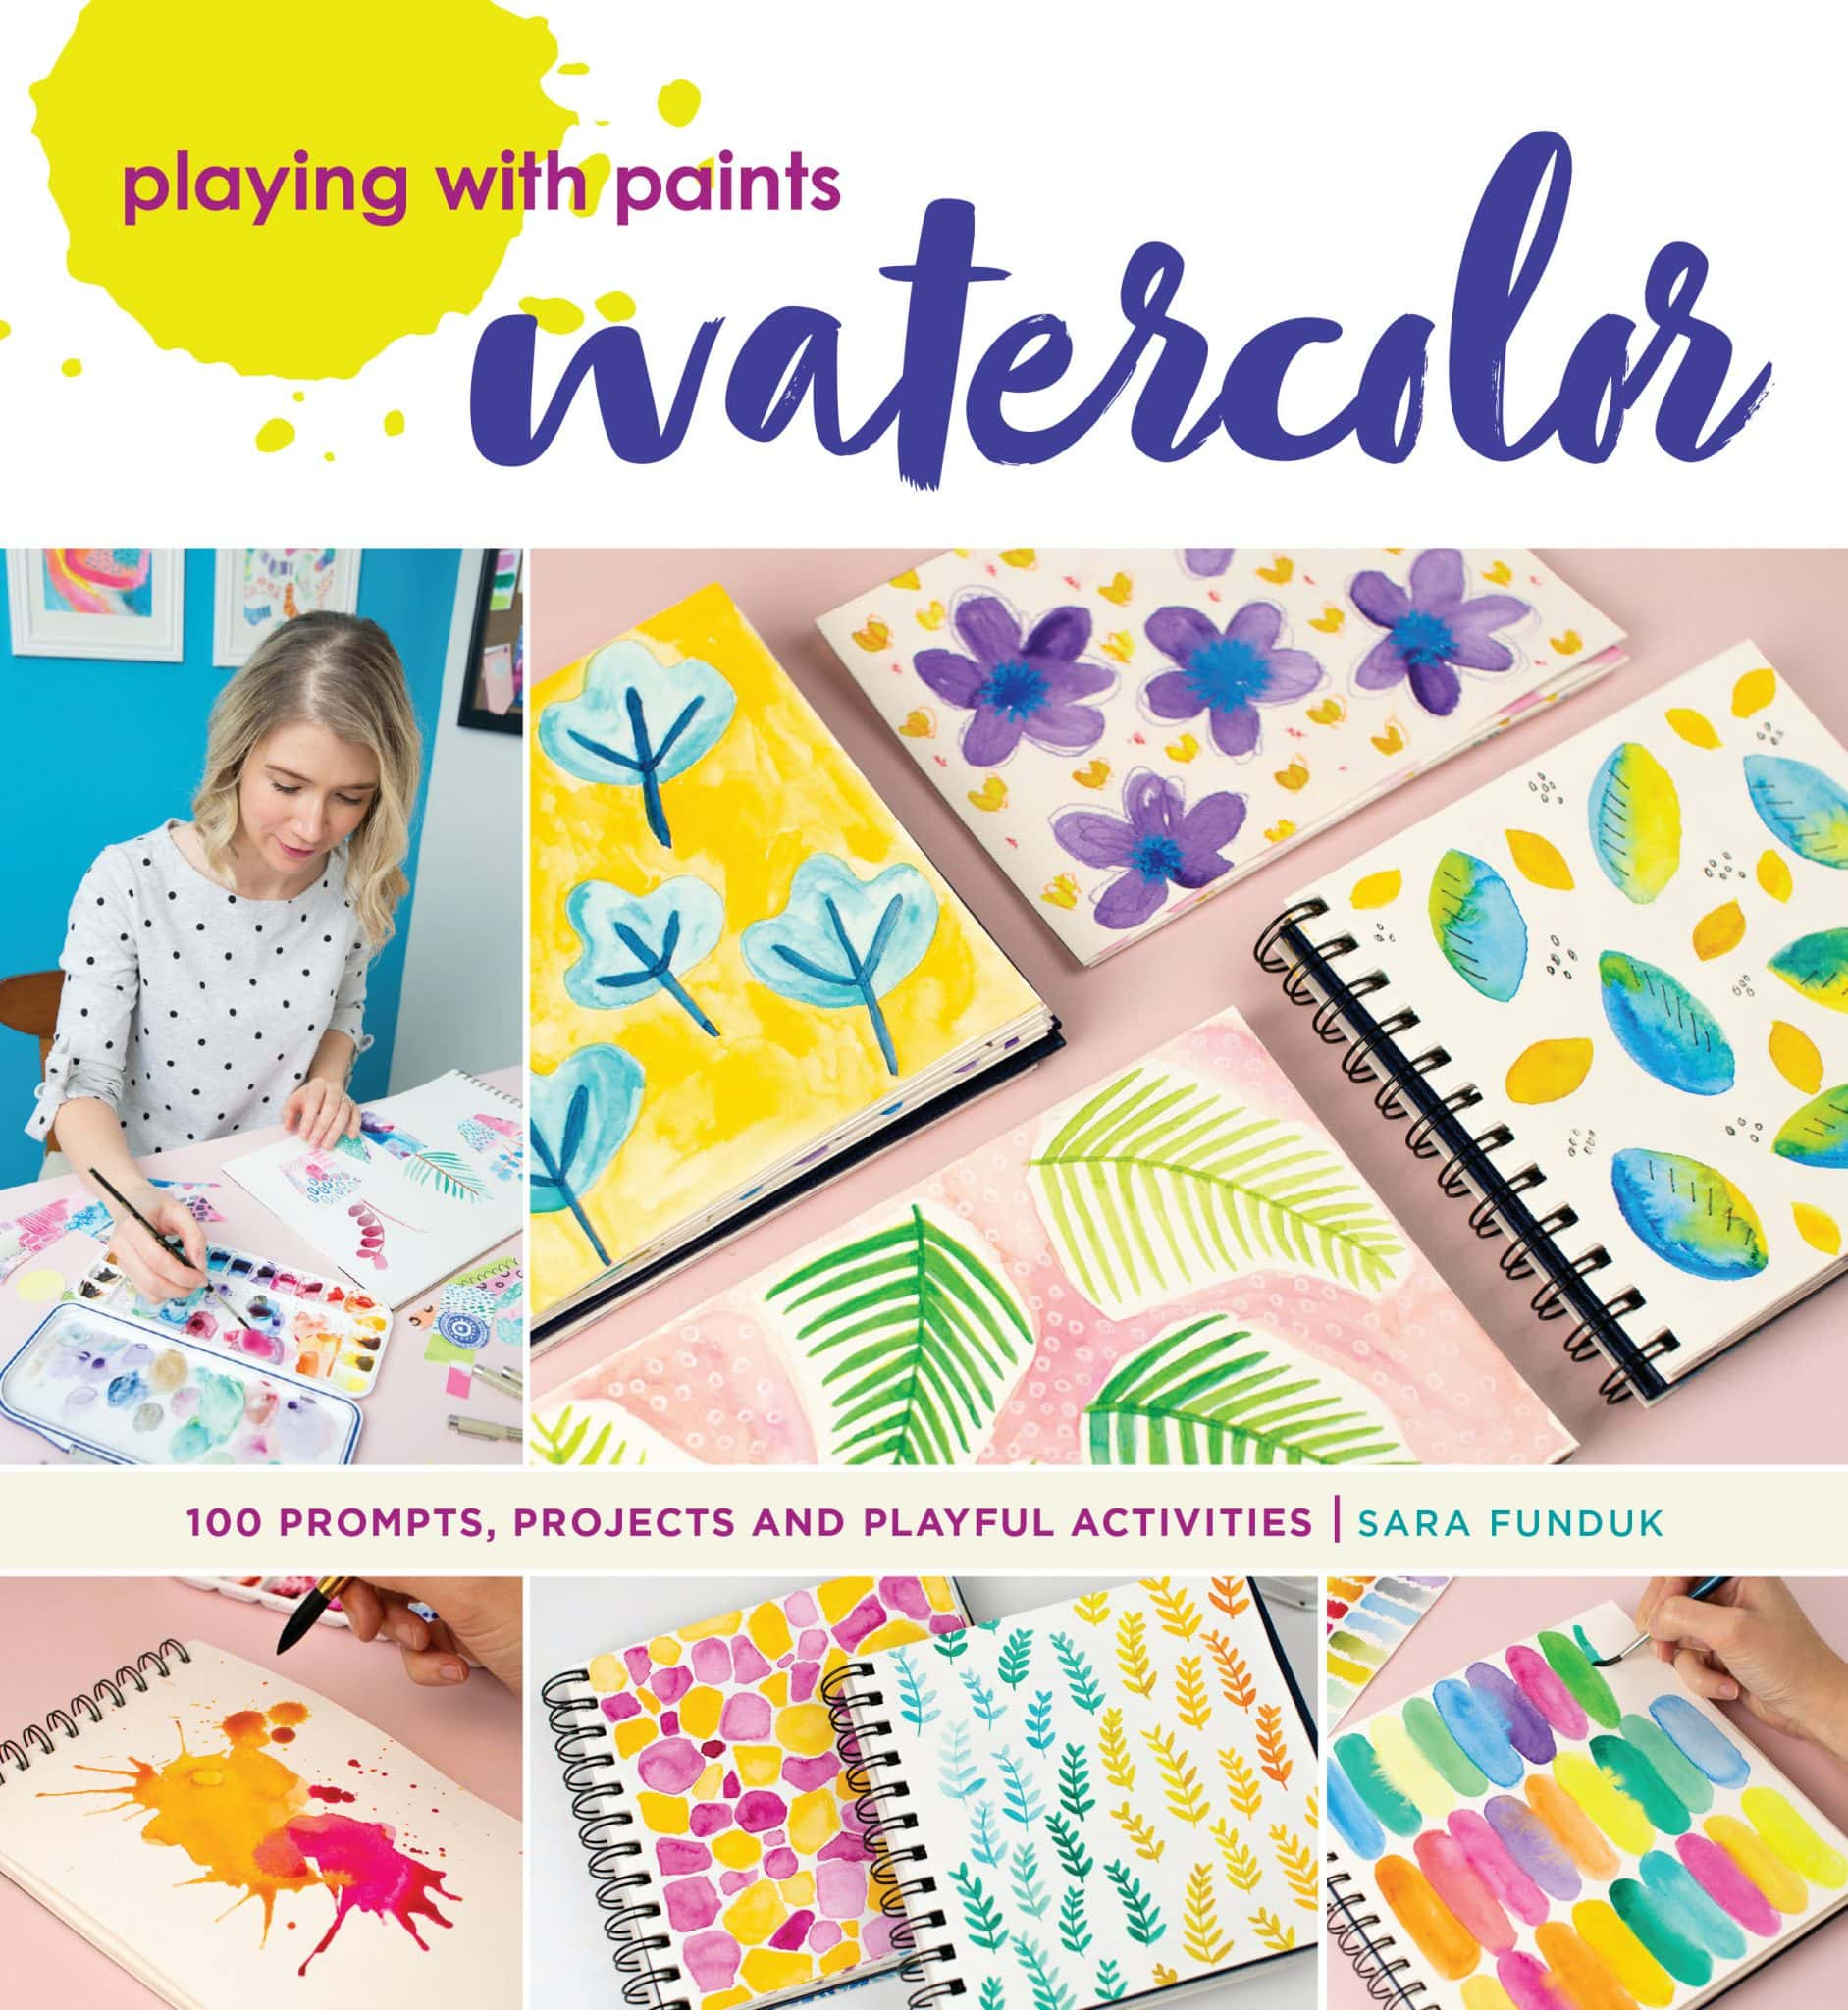 PLAYING WITH PAINTS—WATERCOLOR- 100 Prompts, Projects and Playful Activities by Sara Funduk